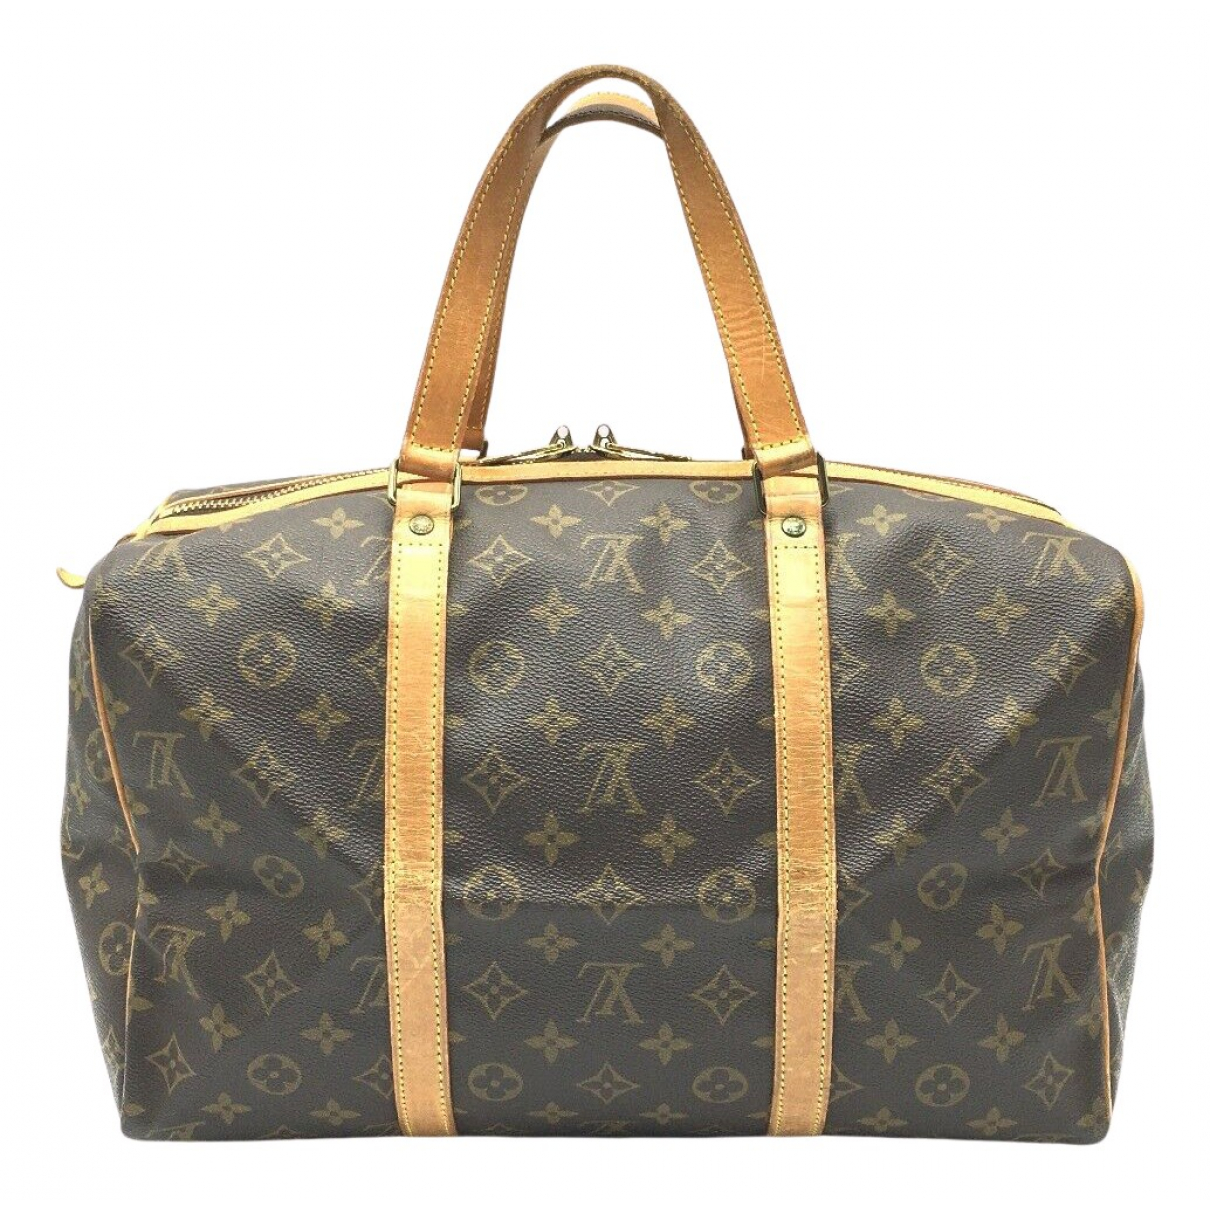 Louis Vuitton Sac souple  Brown Cloth Travel bag for Women N